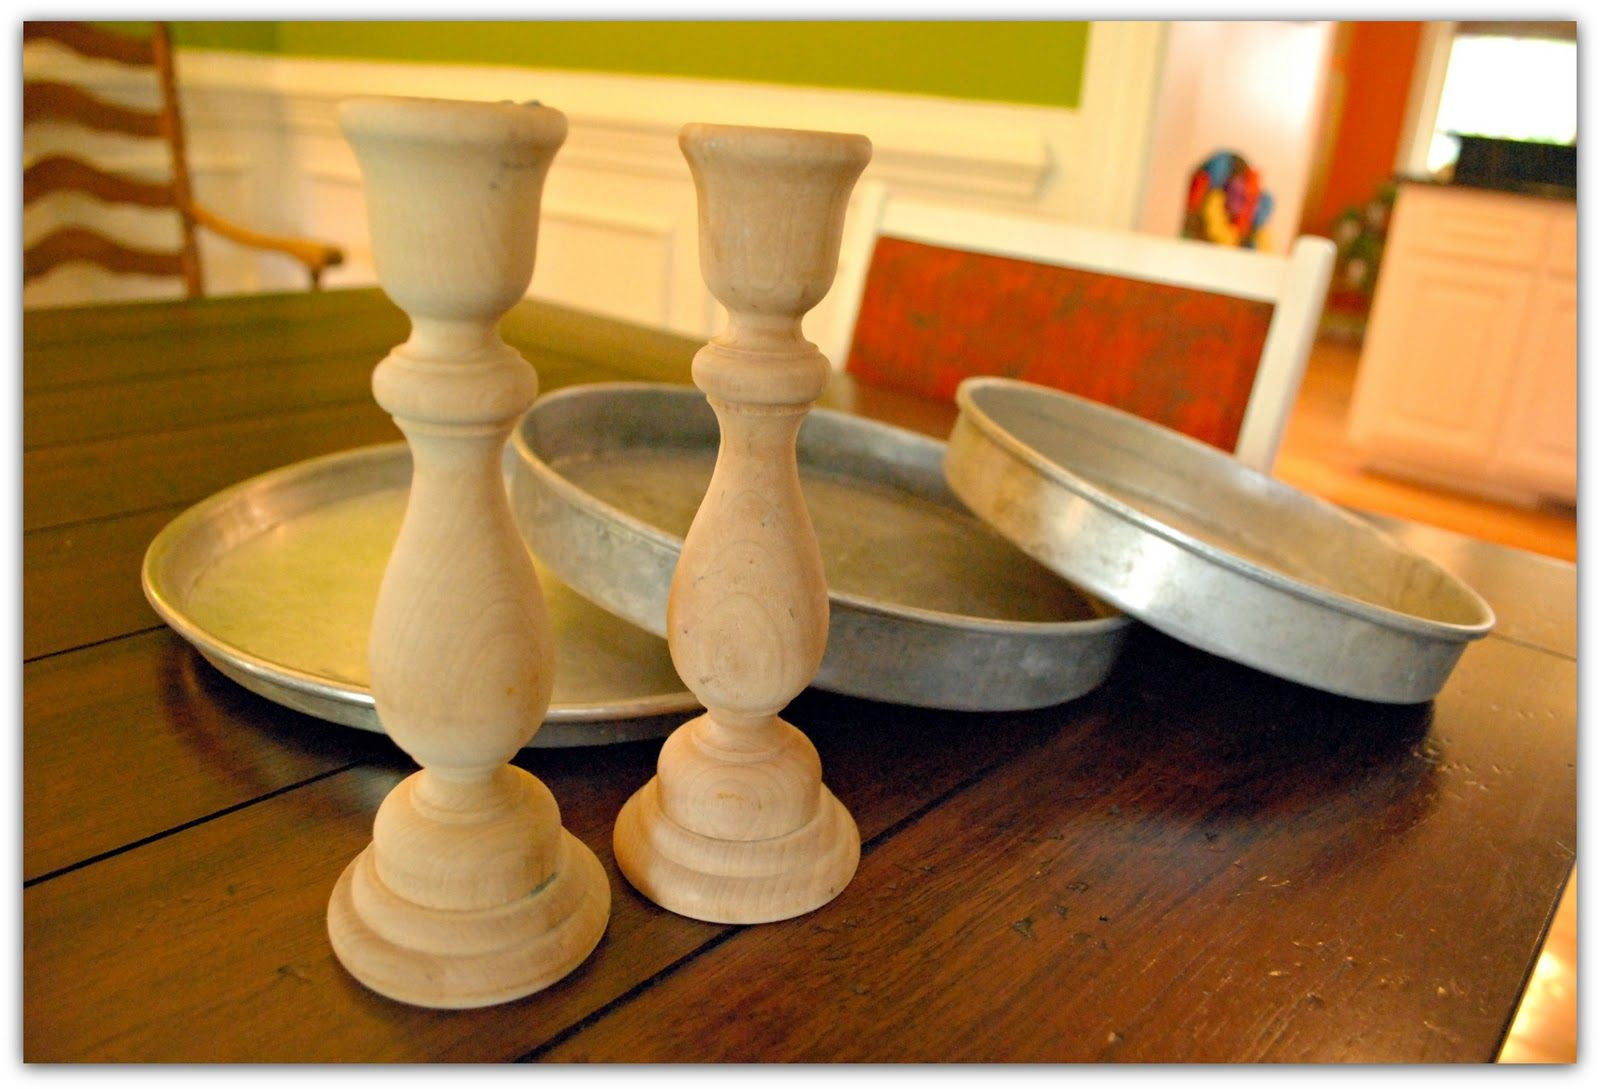 A blog about thrifting and home decor.